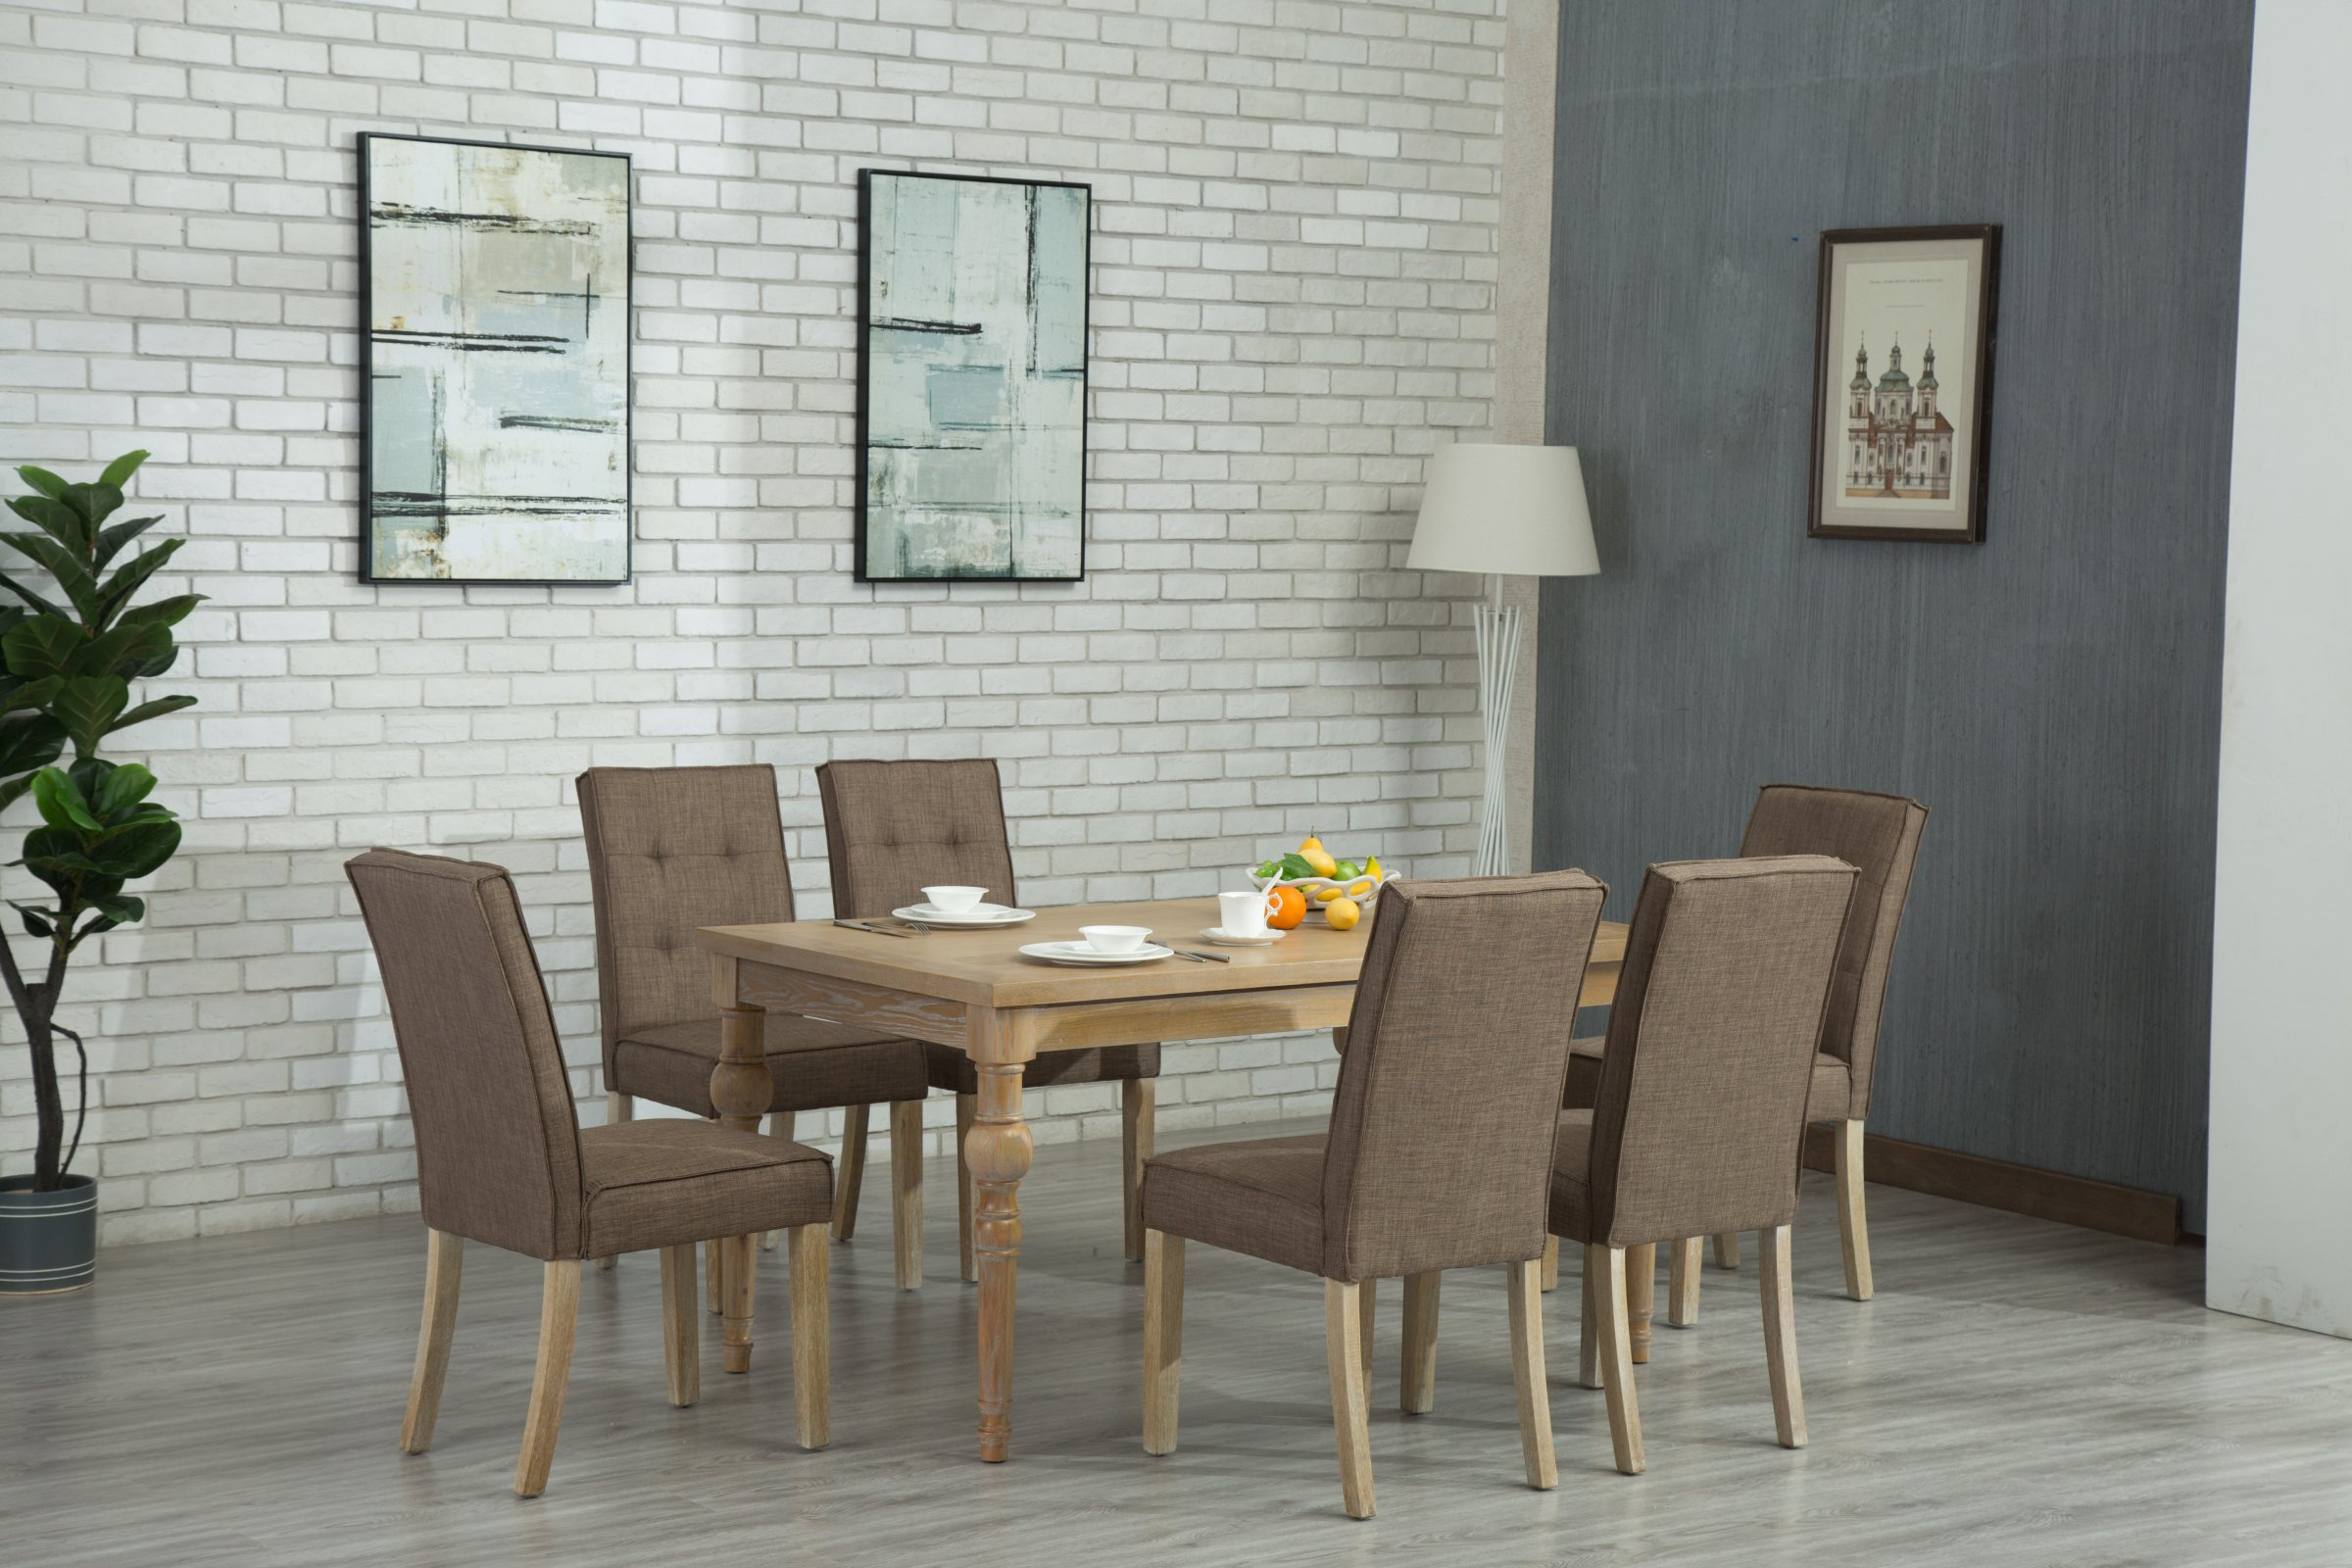 Oliver smith roosevelt collection 7 piece dining table and 6 chairs dinette